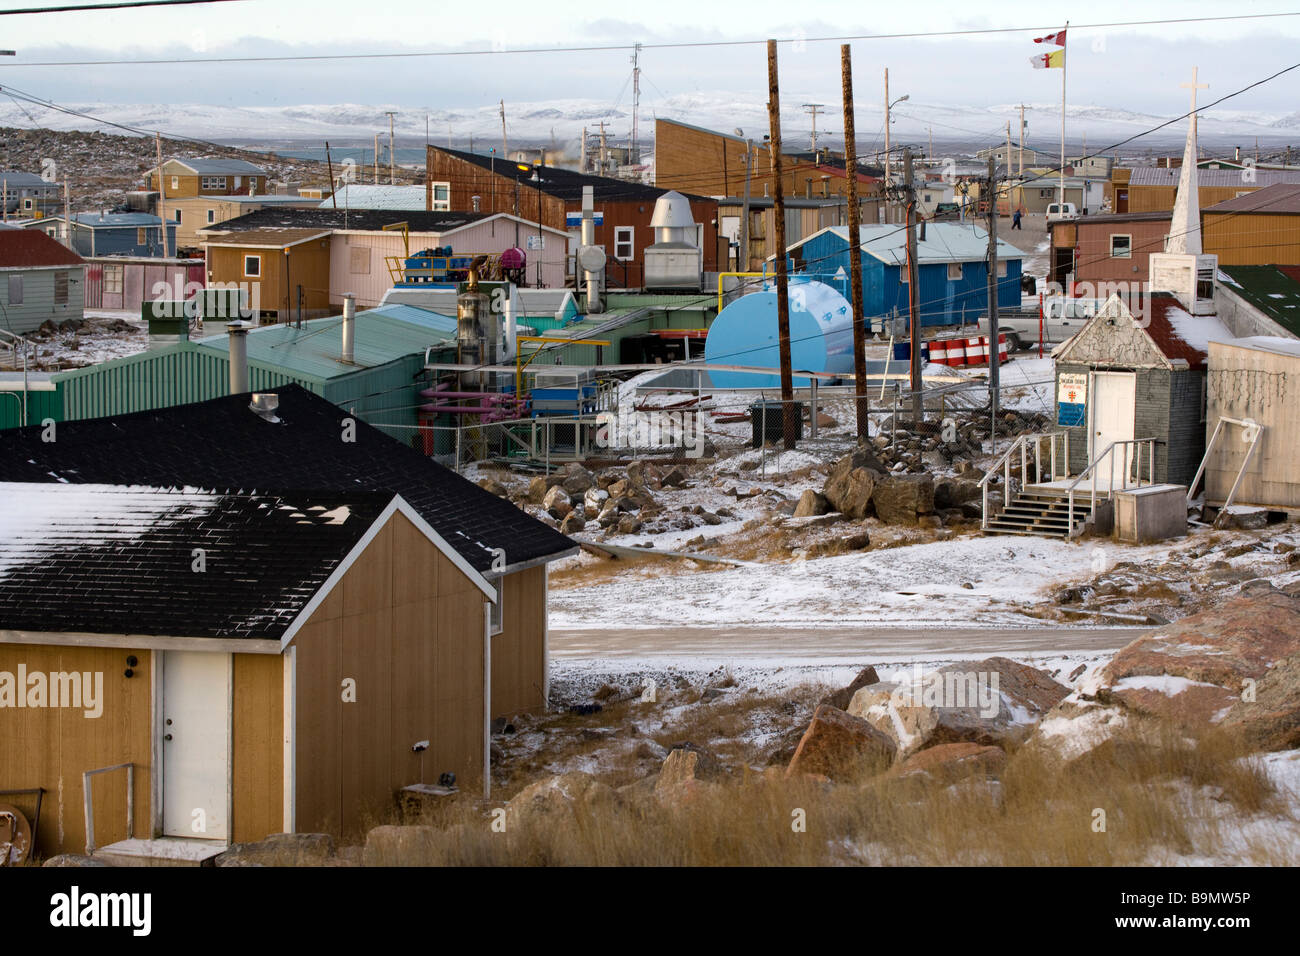 Traditional buildings in Taloyoak inuit settlement Nunavut, elevated view, Canadian arctic, Canada - Stock Image